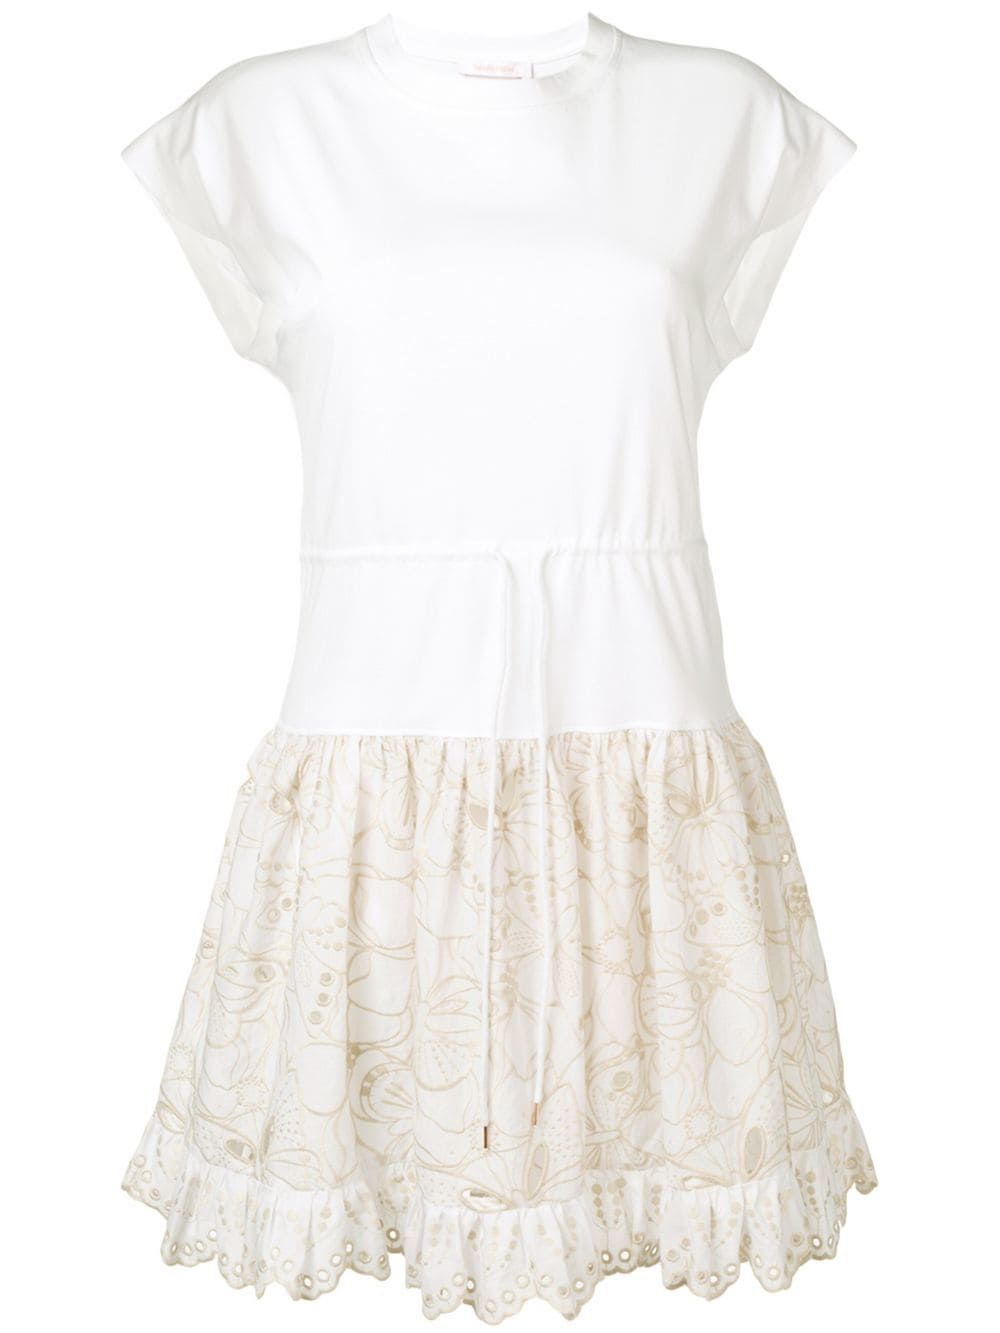 See By Chloe See By Chloe Embroidered T Shirt Dress White Seebychloe Cloth Lace Detailed Dress See By Chloe T Shirt Dress [ 1333 x 1000 Pixel ]